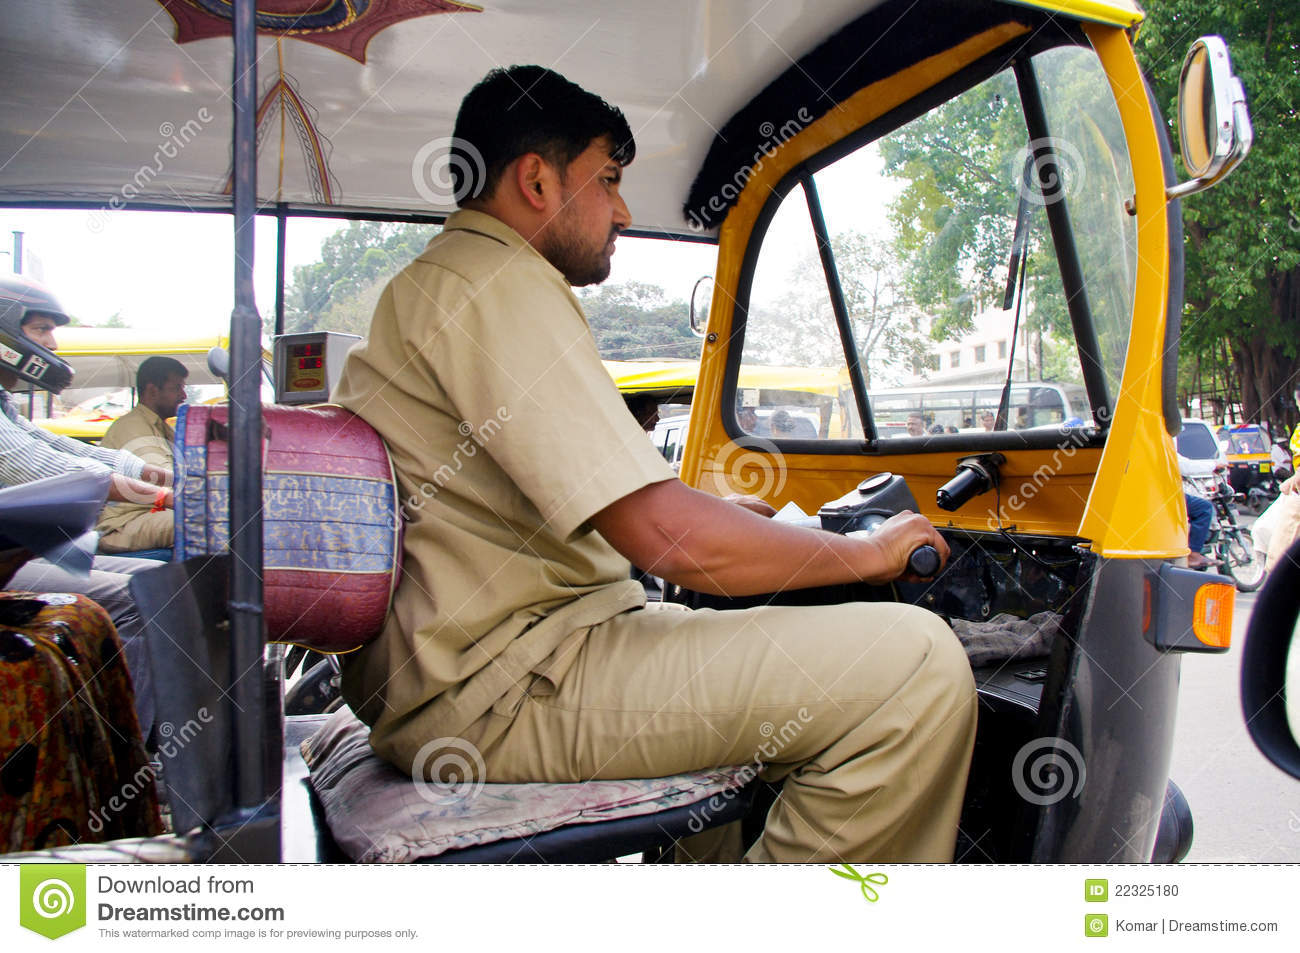 Street Dreams Auto >> Indian Auto Rickshaw Driver Editorial Image - Image of three, taxis: 22325180